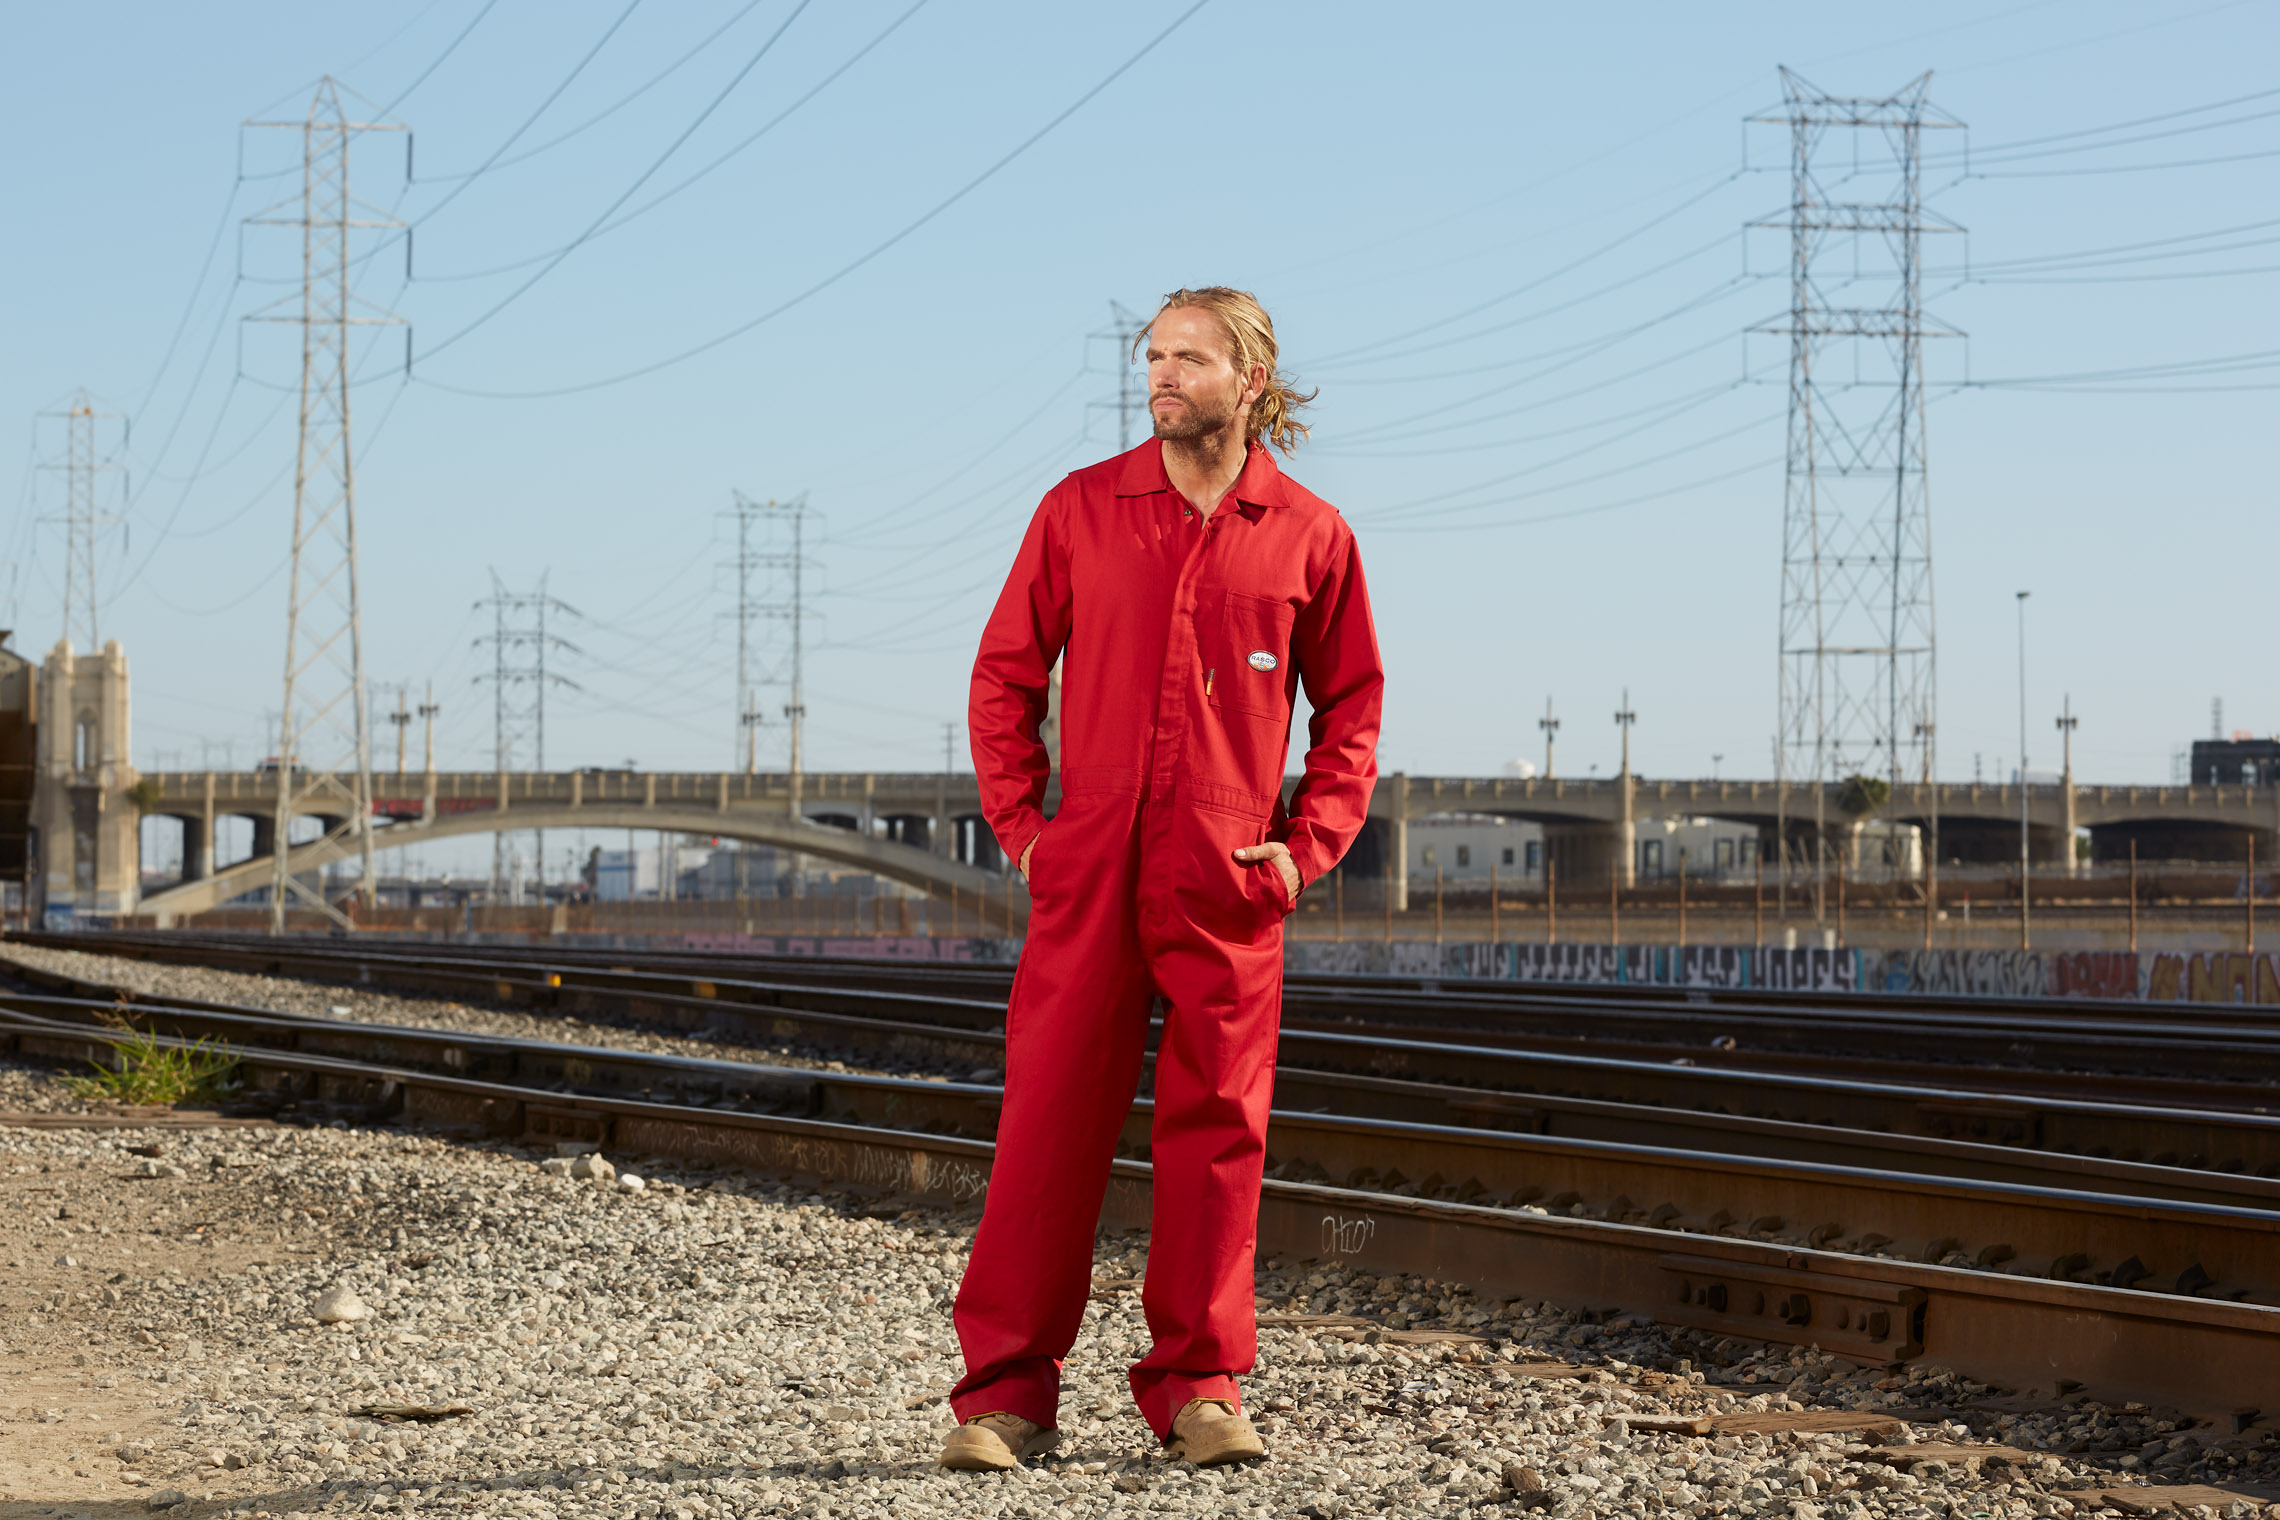 man in red jumpsuit overall work clothing at rail track in Los Angeles in work clothes shoot by Robert Wilde